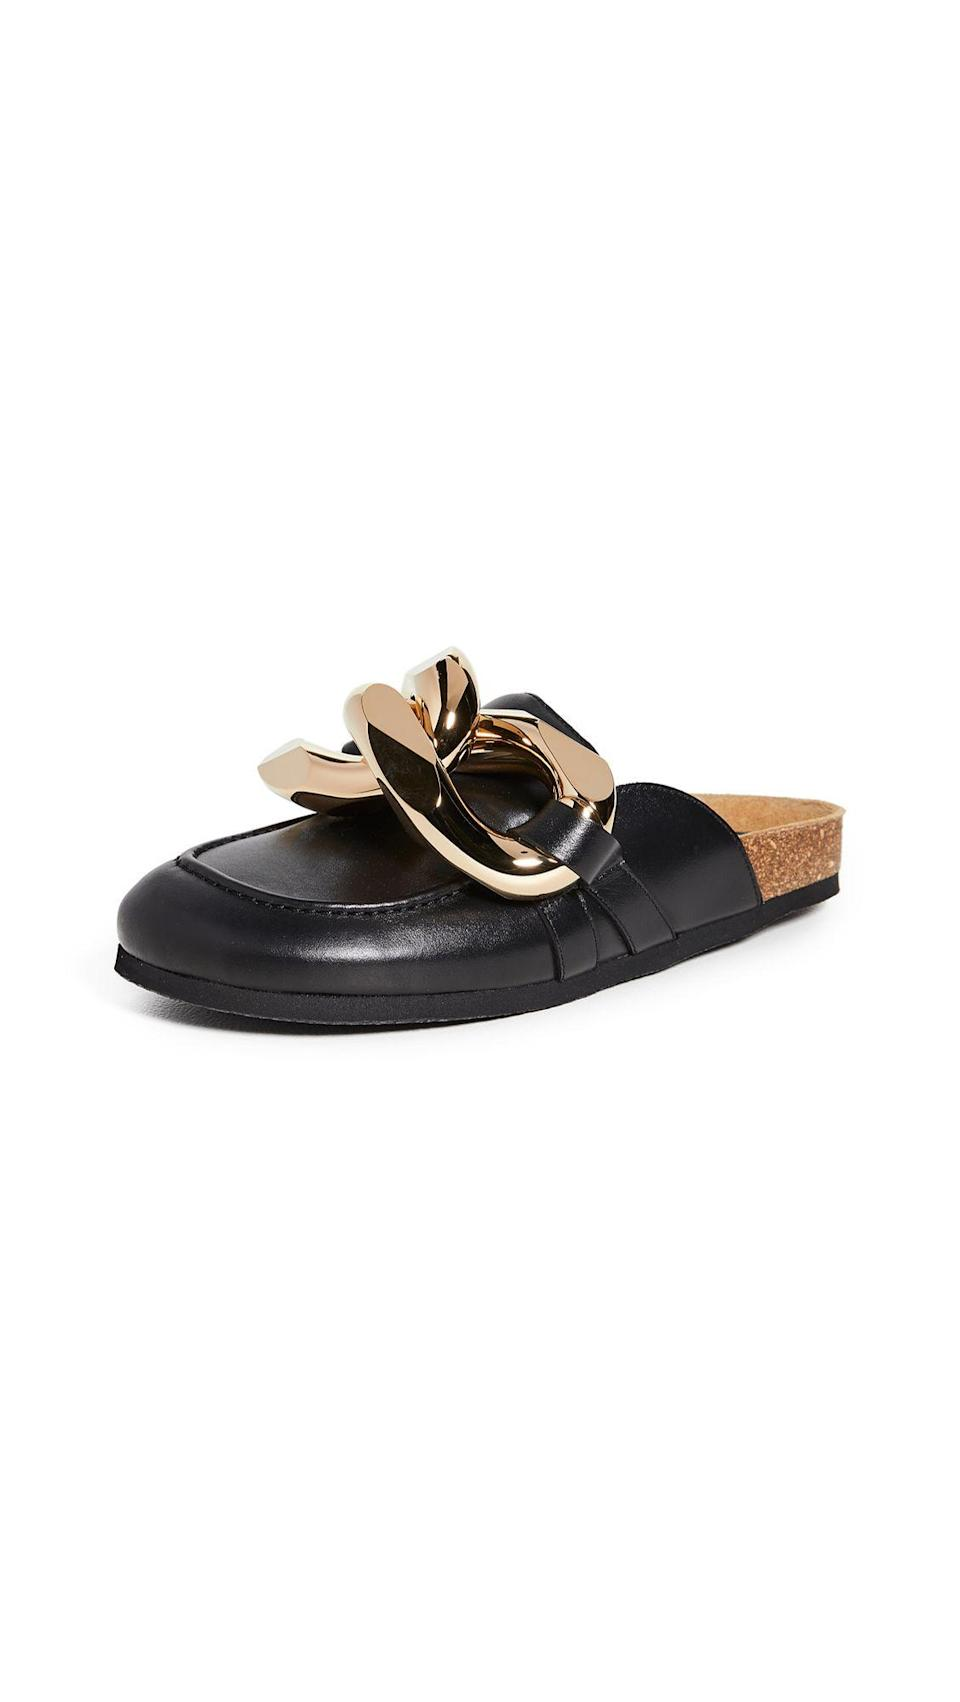 """<p><strong>JW Anderson </strong></p><p>shopbop.com</p><p><a href=""""https://go.redirectingat.com?id=74968X1596630&url=https%3A%2F%2Fwww.shopbop.com%2Fchain-loafer-jw-anderson%2Fvp%2Fv%3D1%2F1561106422.htm&sref=https%3A%2F%2Fwww.townandcountrymag.com%2Fstyle%2Ffashion-trends%2Fg36107567%2Fshopbop-spring-sale%2F"""" rel=""""nofollow noopener"""" target=""""_blank"""" data-ylk=""""slk:Shop Now"""" class=""""link rapid-noclick-resp"""">Shop Now</a></p><p><strong><del>$640</del> $512 (20% off)</strong></p><p>JW Anderson's cult-loved chain mules are rarely be found on sale. </p>"""